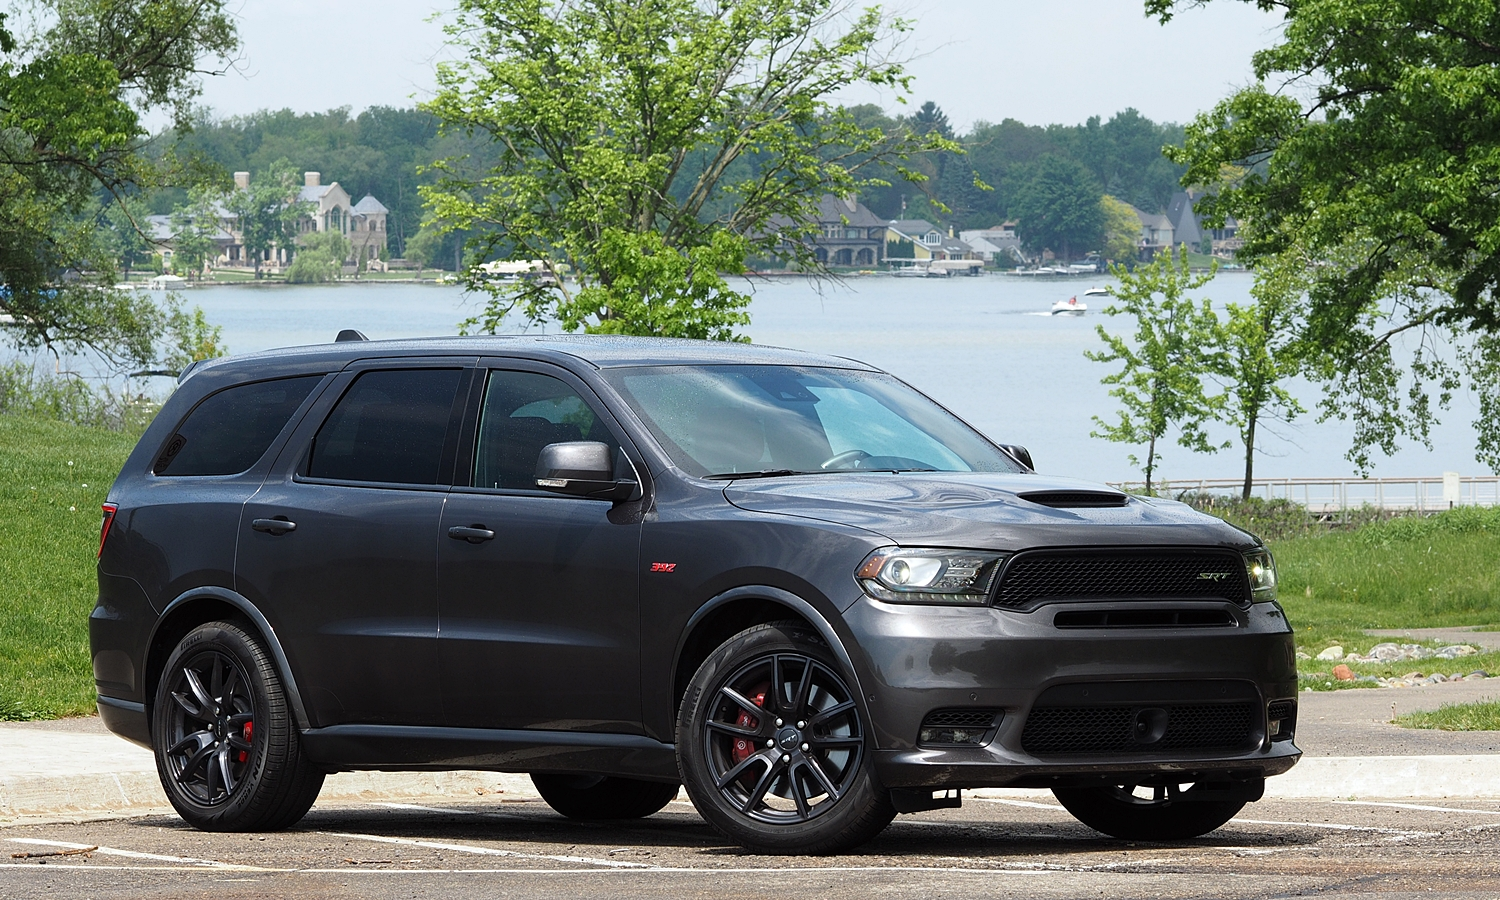 2018 Dodge Durango SRT front quarter view